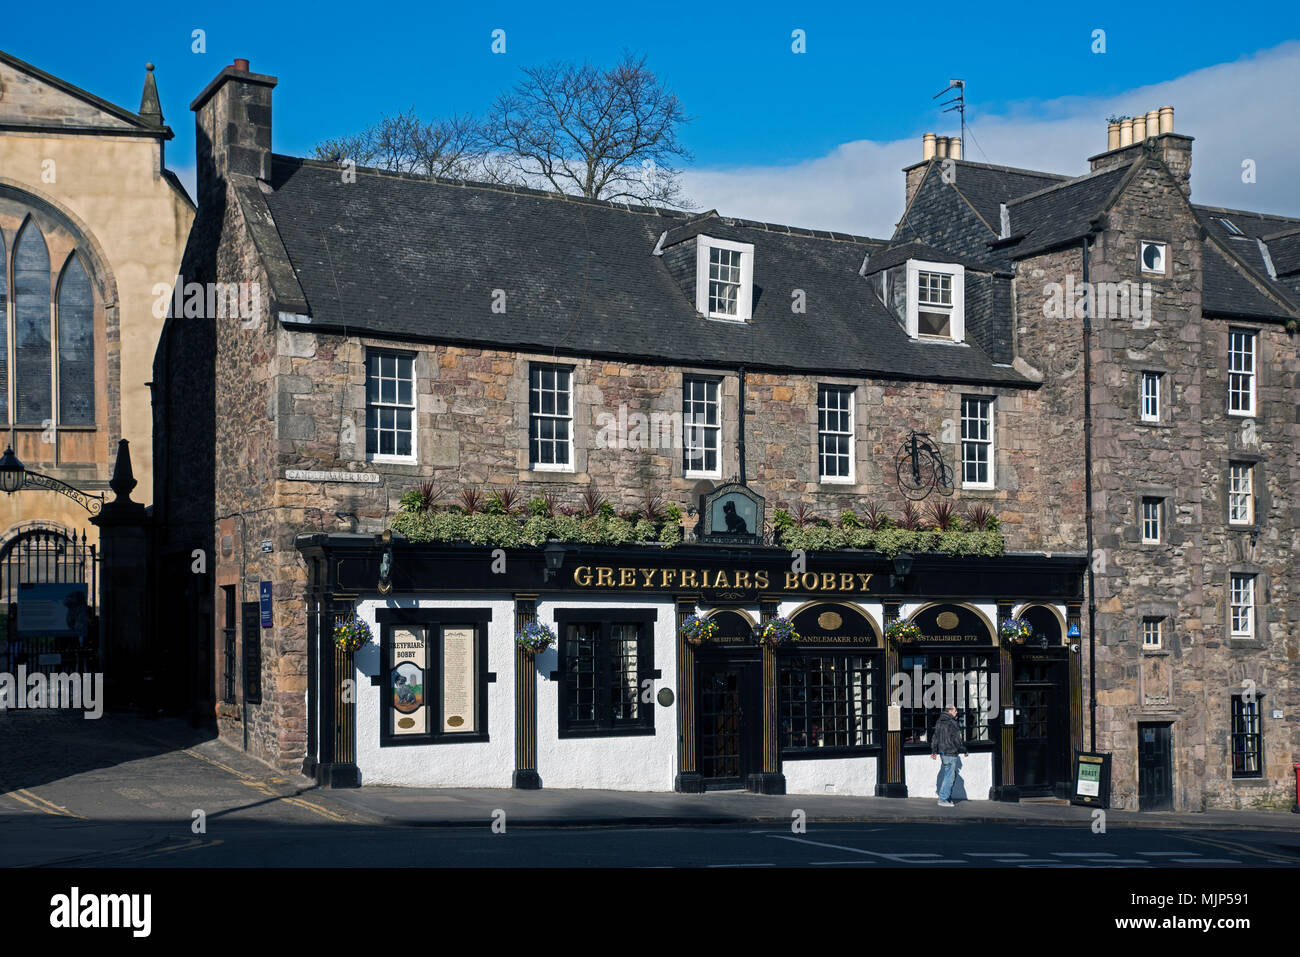 Greyfriars Bobby public house on Candlemaker Rown in Edinburgh's Old Town. - Stock Image